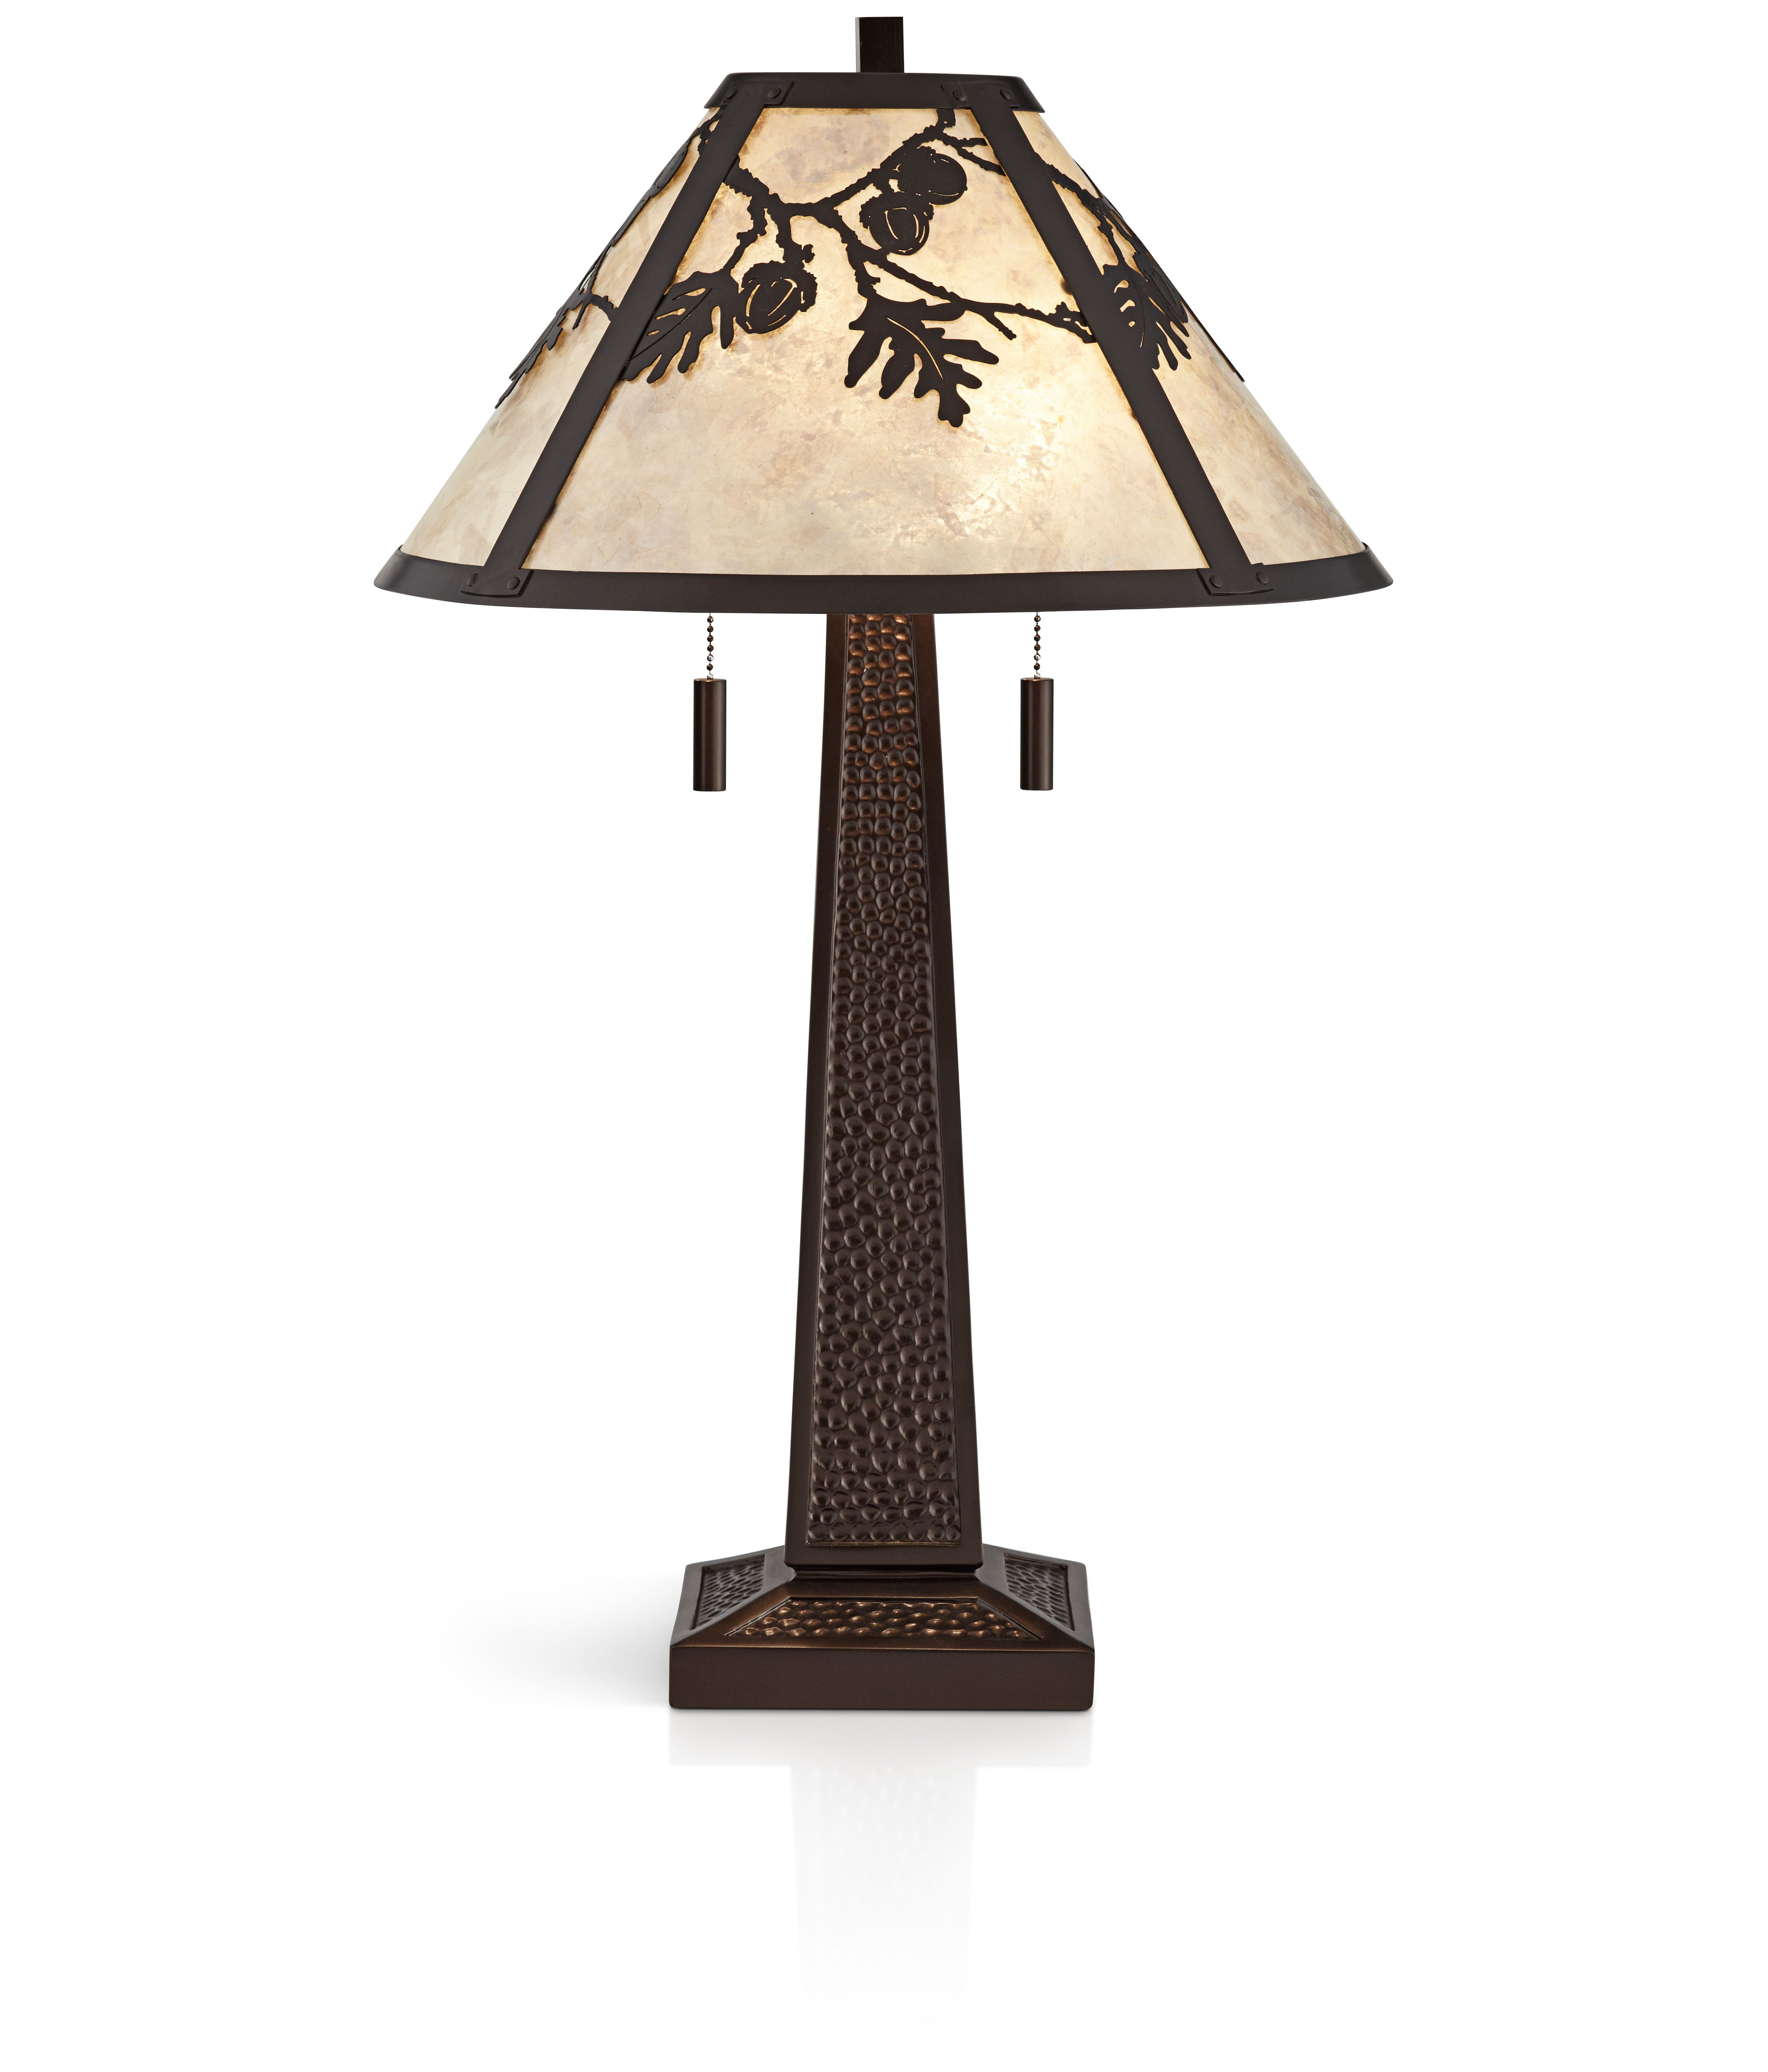 Lodge and rustic inspired table lamp with  mica shade.   #lodge #lodgestyle #lodgehome #lodgedecor #rustic #rusticstyle #home #homedecor #homestyling #bedroom #bedroomdecor #livingroom #livingroomdecor #mica #interiordesign #interiorinspiration